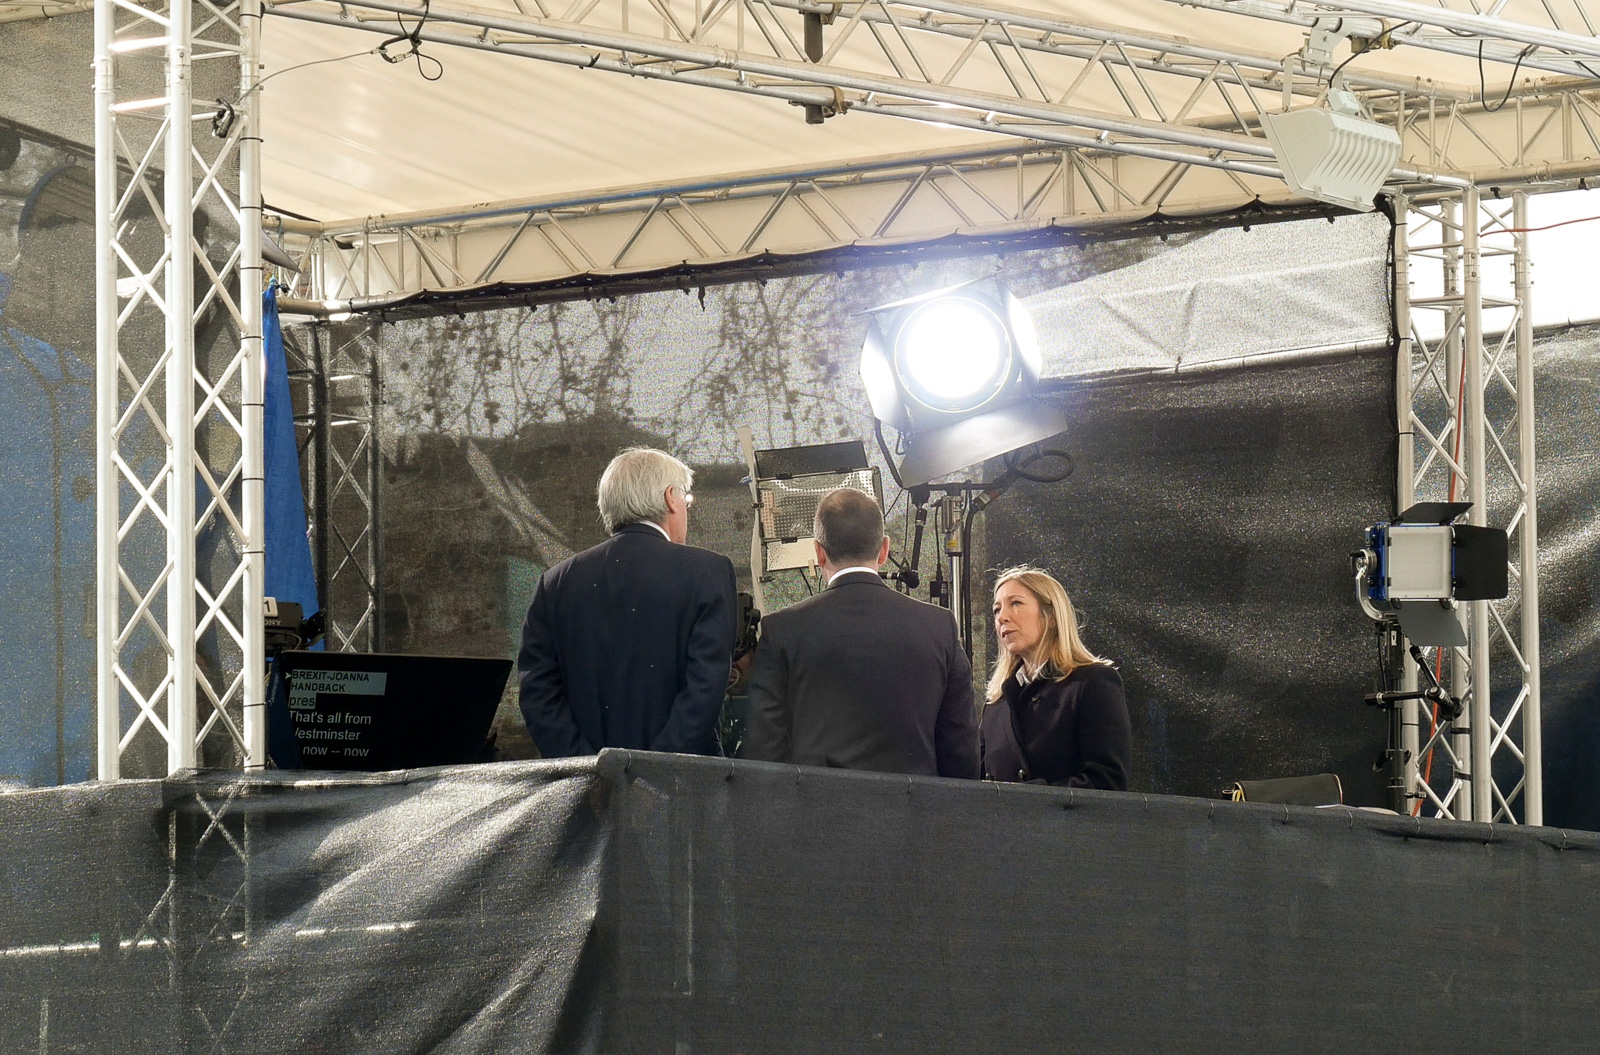 I think that is the TV news presenter      Joanna Gosling      at work in the BBC's gazebo